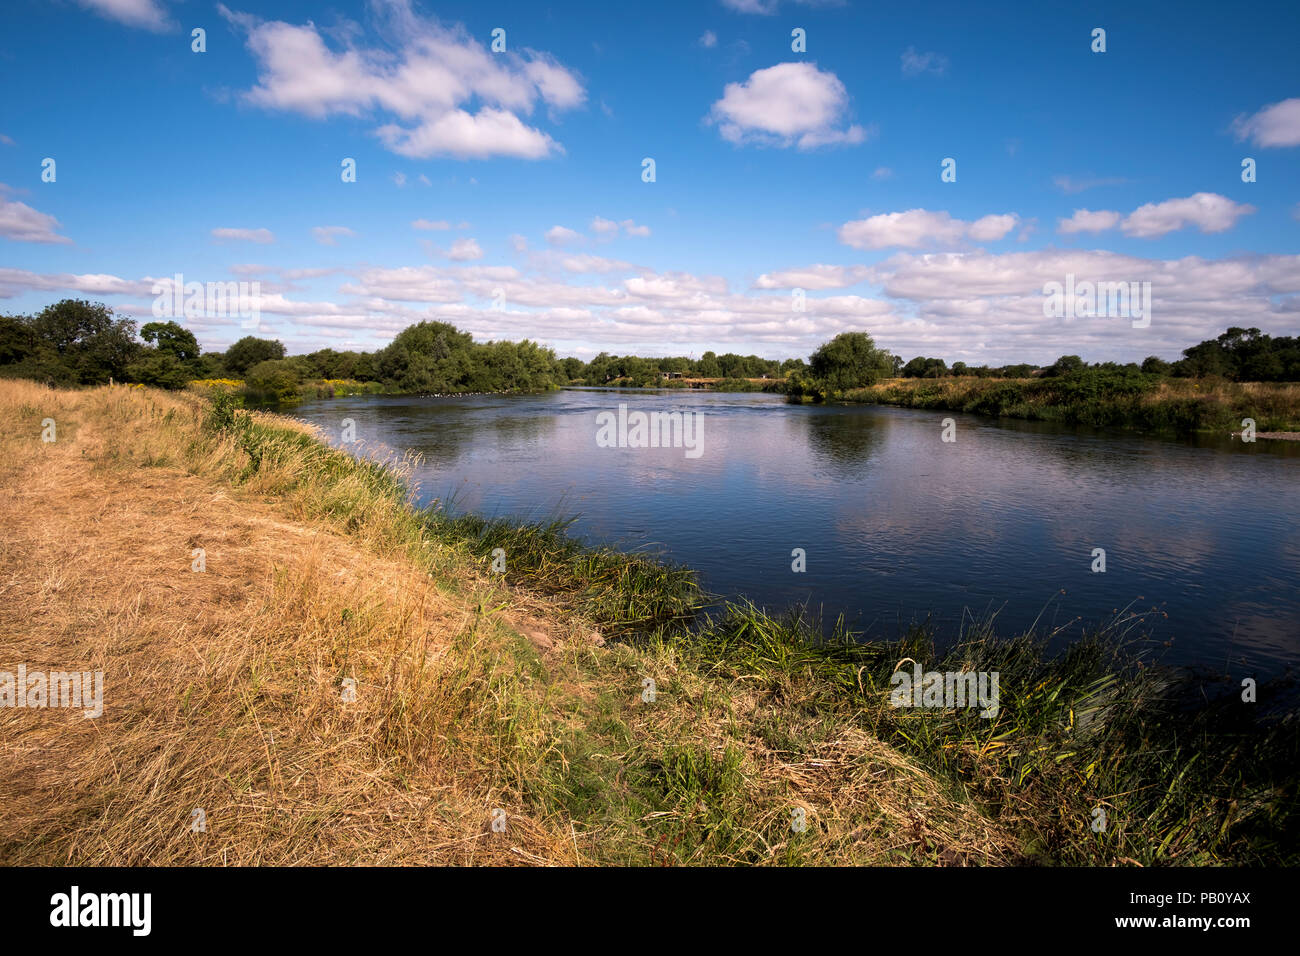 The River Trent near Sawley, Derbyshire during the UK summer heatwave 2018 - Stock Image